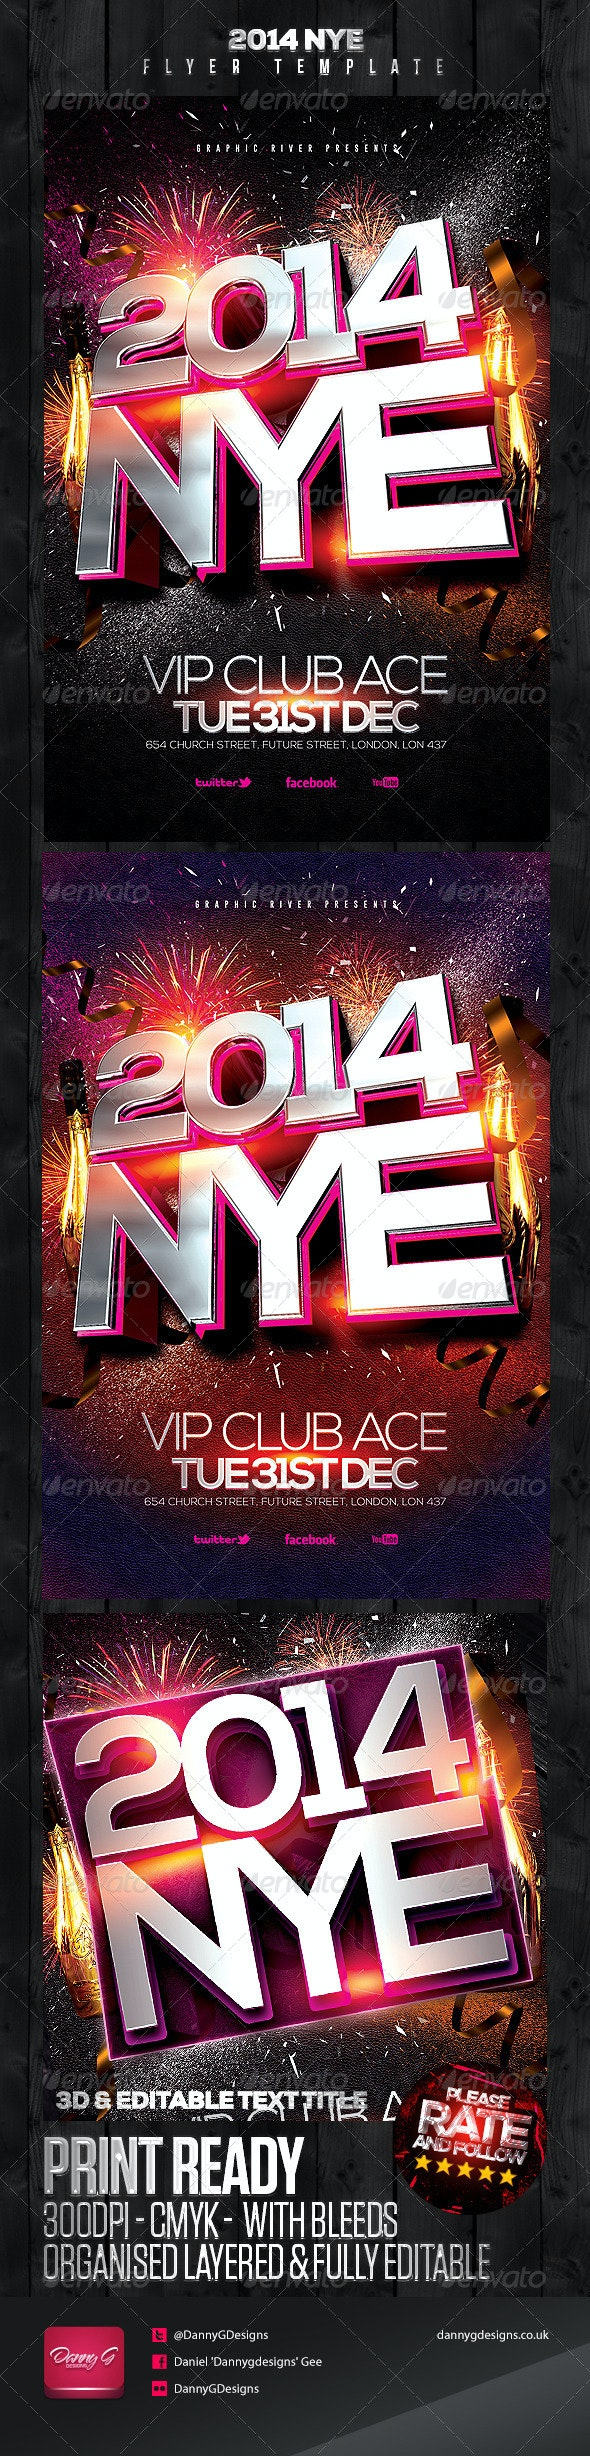 2014 NYE Flyer Template - Clubs & Parties Events